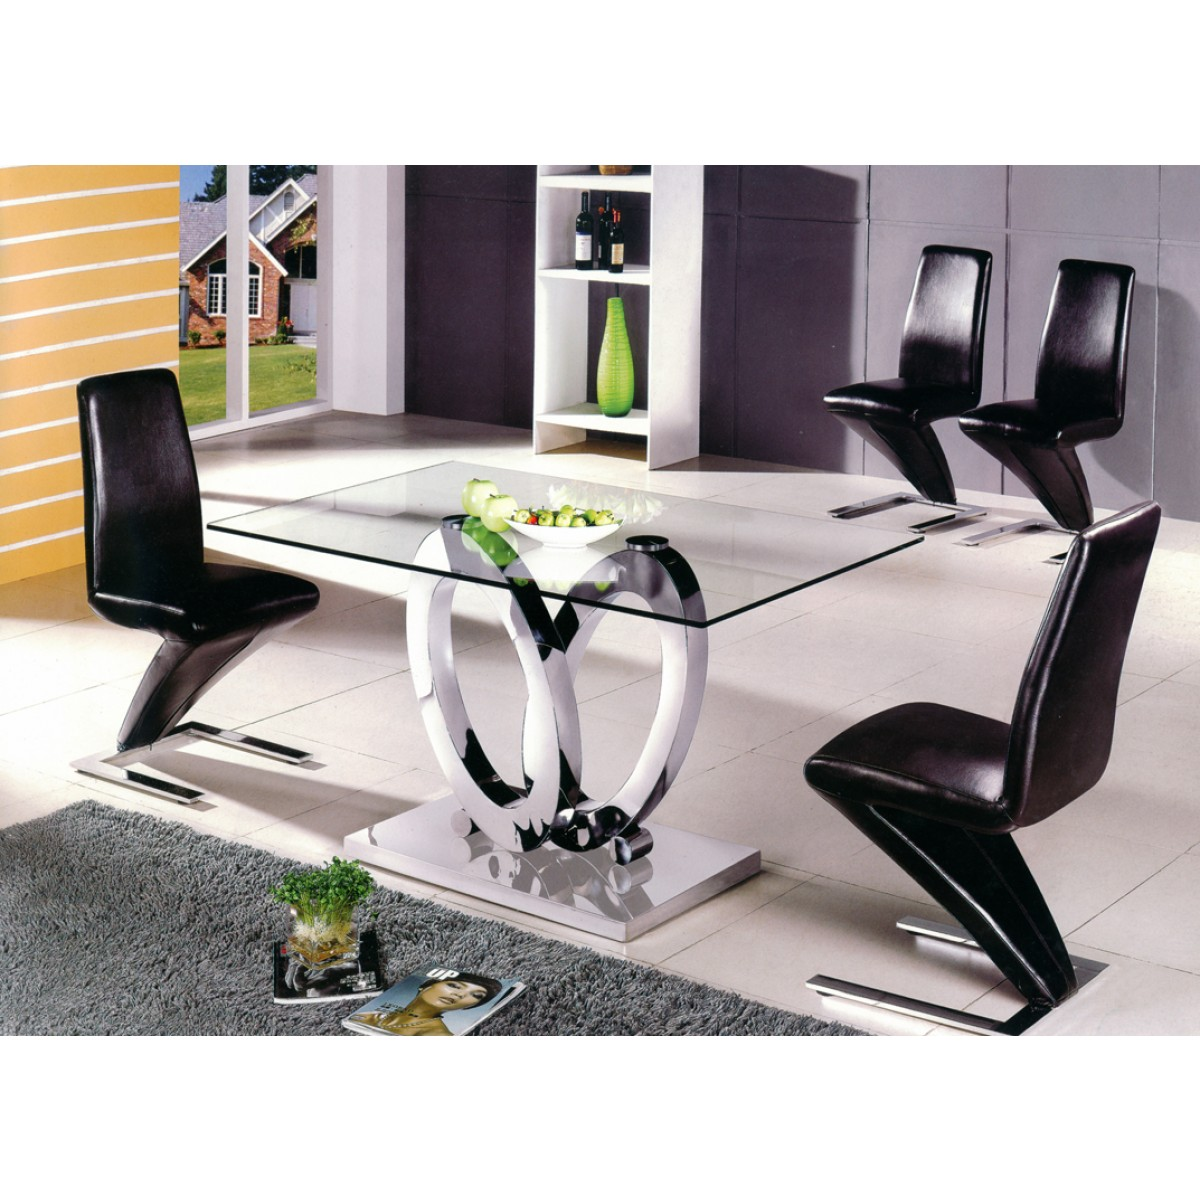 Table manger design ellipse taille au choix tables for Table de salle manger